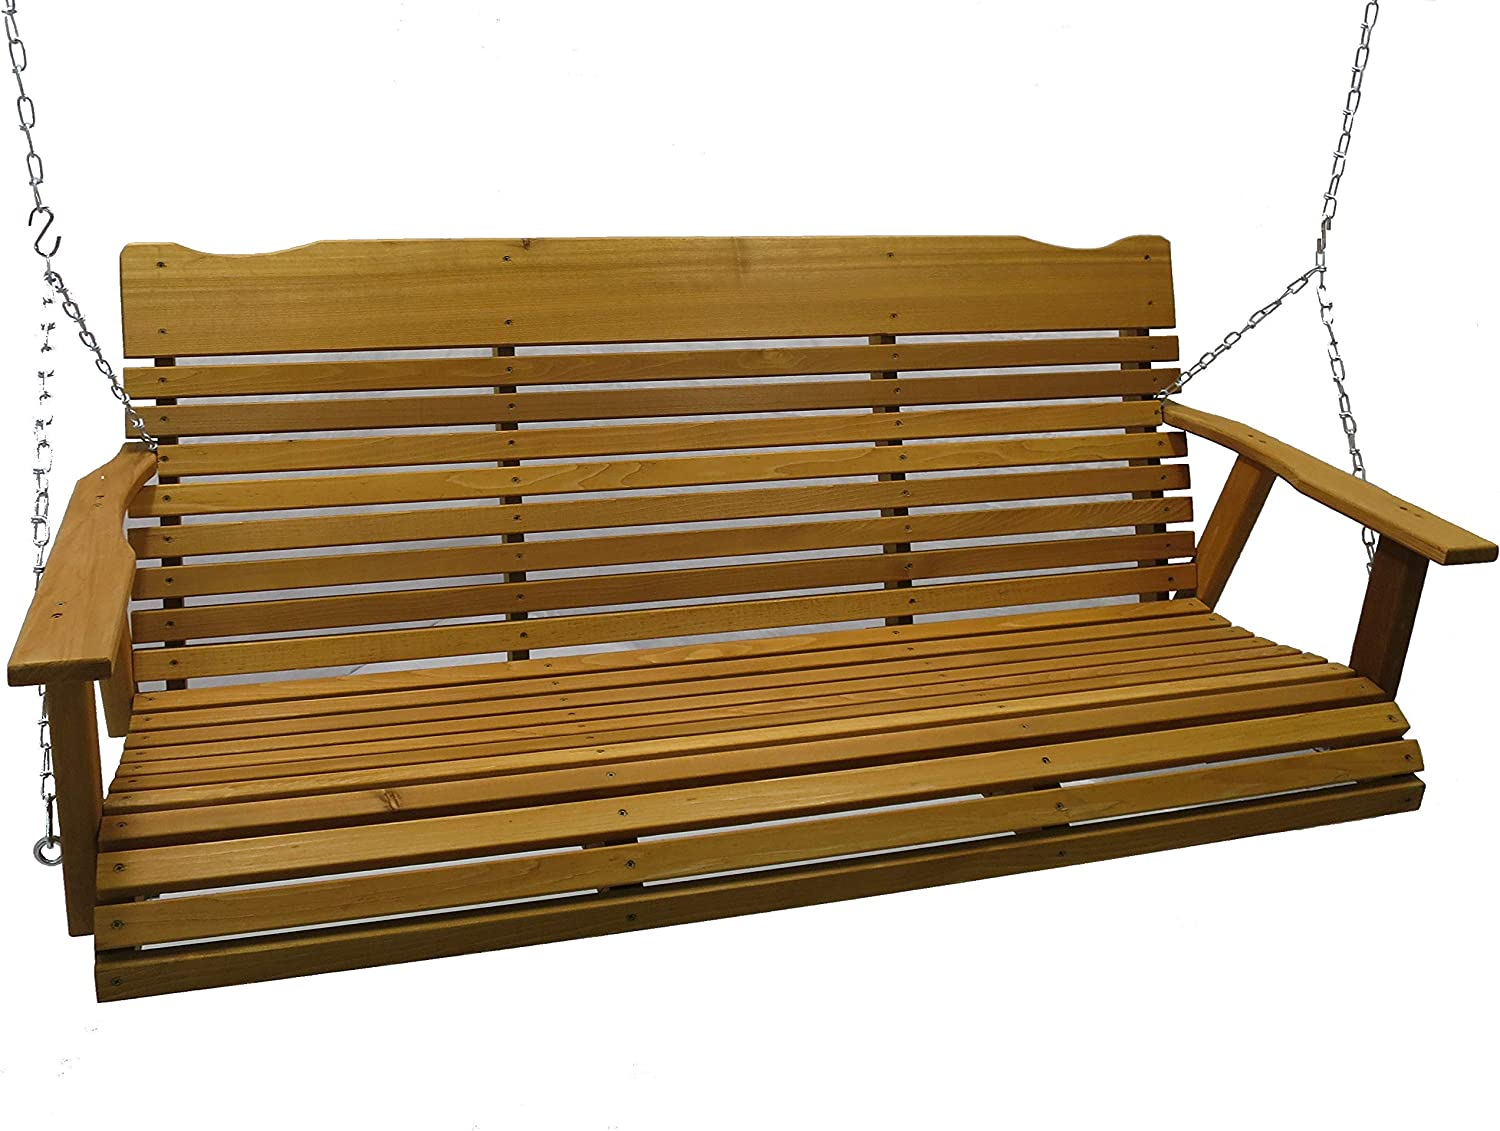 Kilmer Creek 5 Foot Cedar Porch Swing, Stained Finish, Amish Crafted, Includes Chain Springs